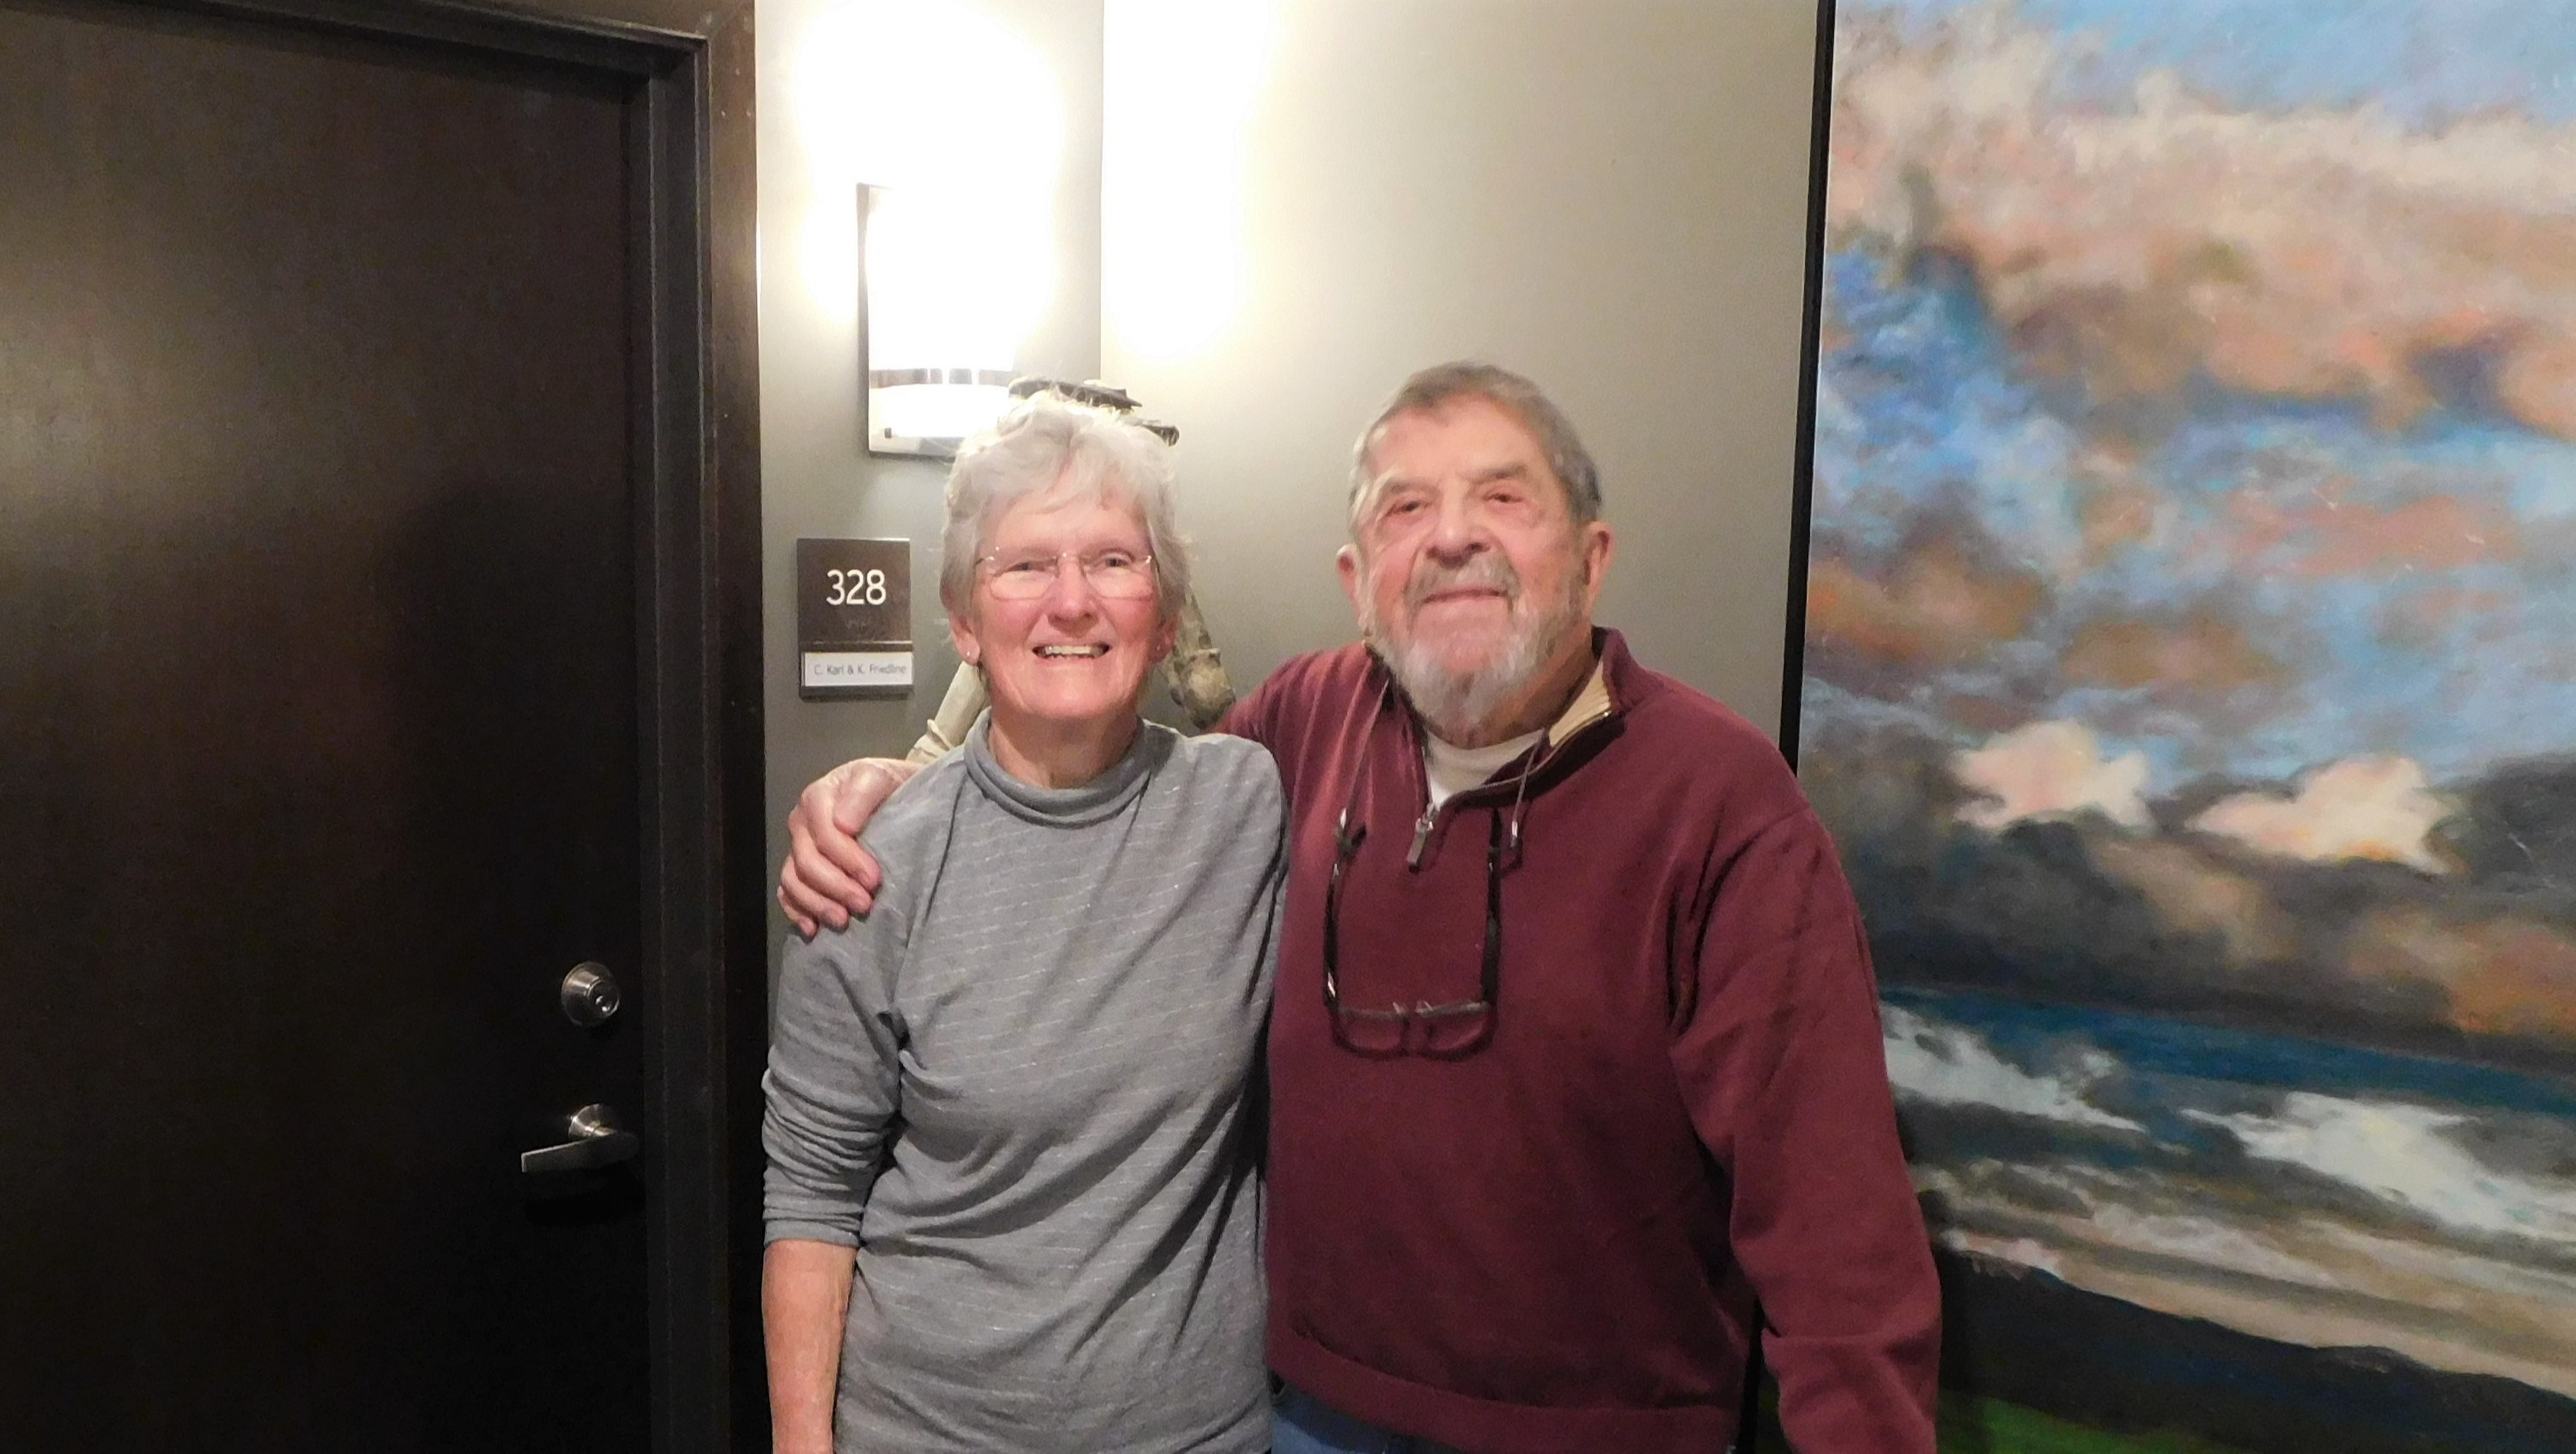 From New Zealand to Onalaska: Carolyn and Karl's story